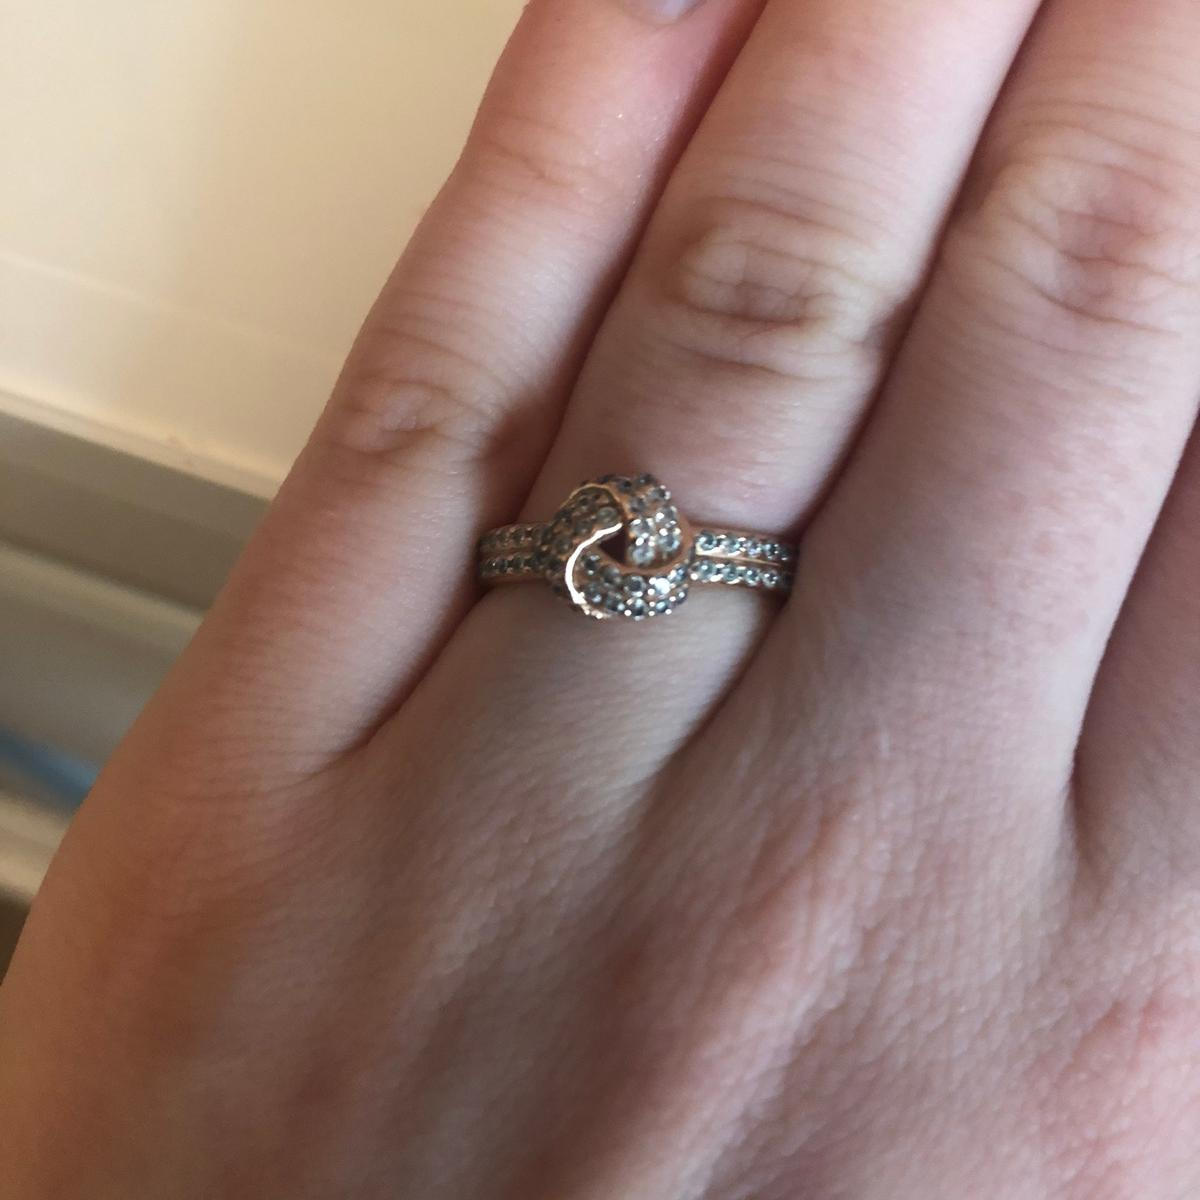 Pandora Rose Gold Knot Ring In Ig8 London For 35 00 For Sale Shpock